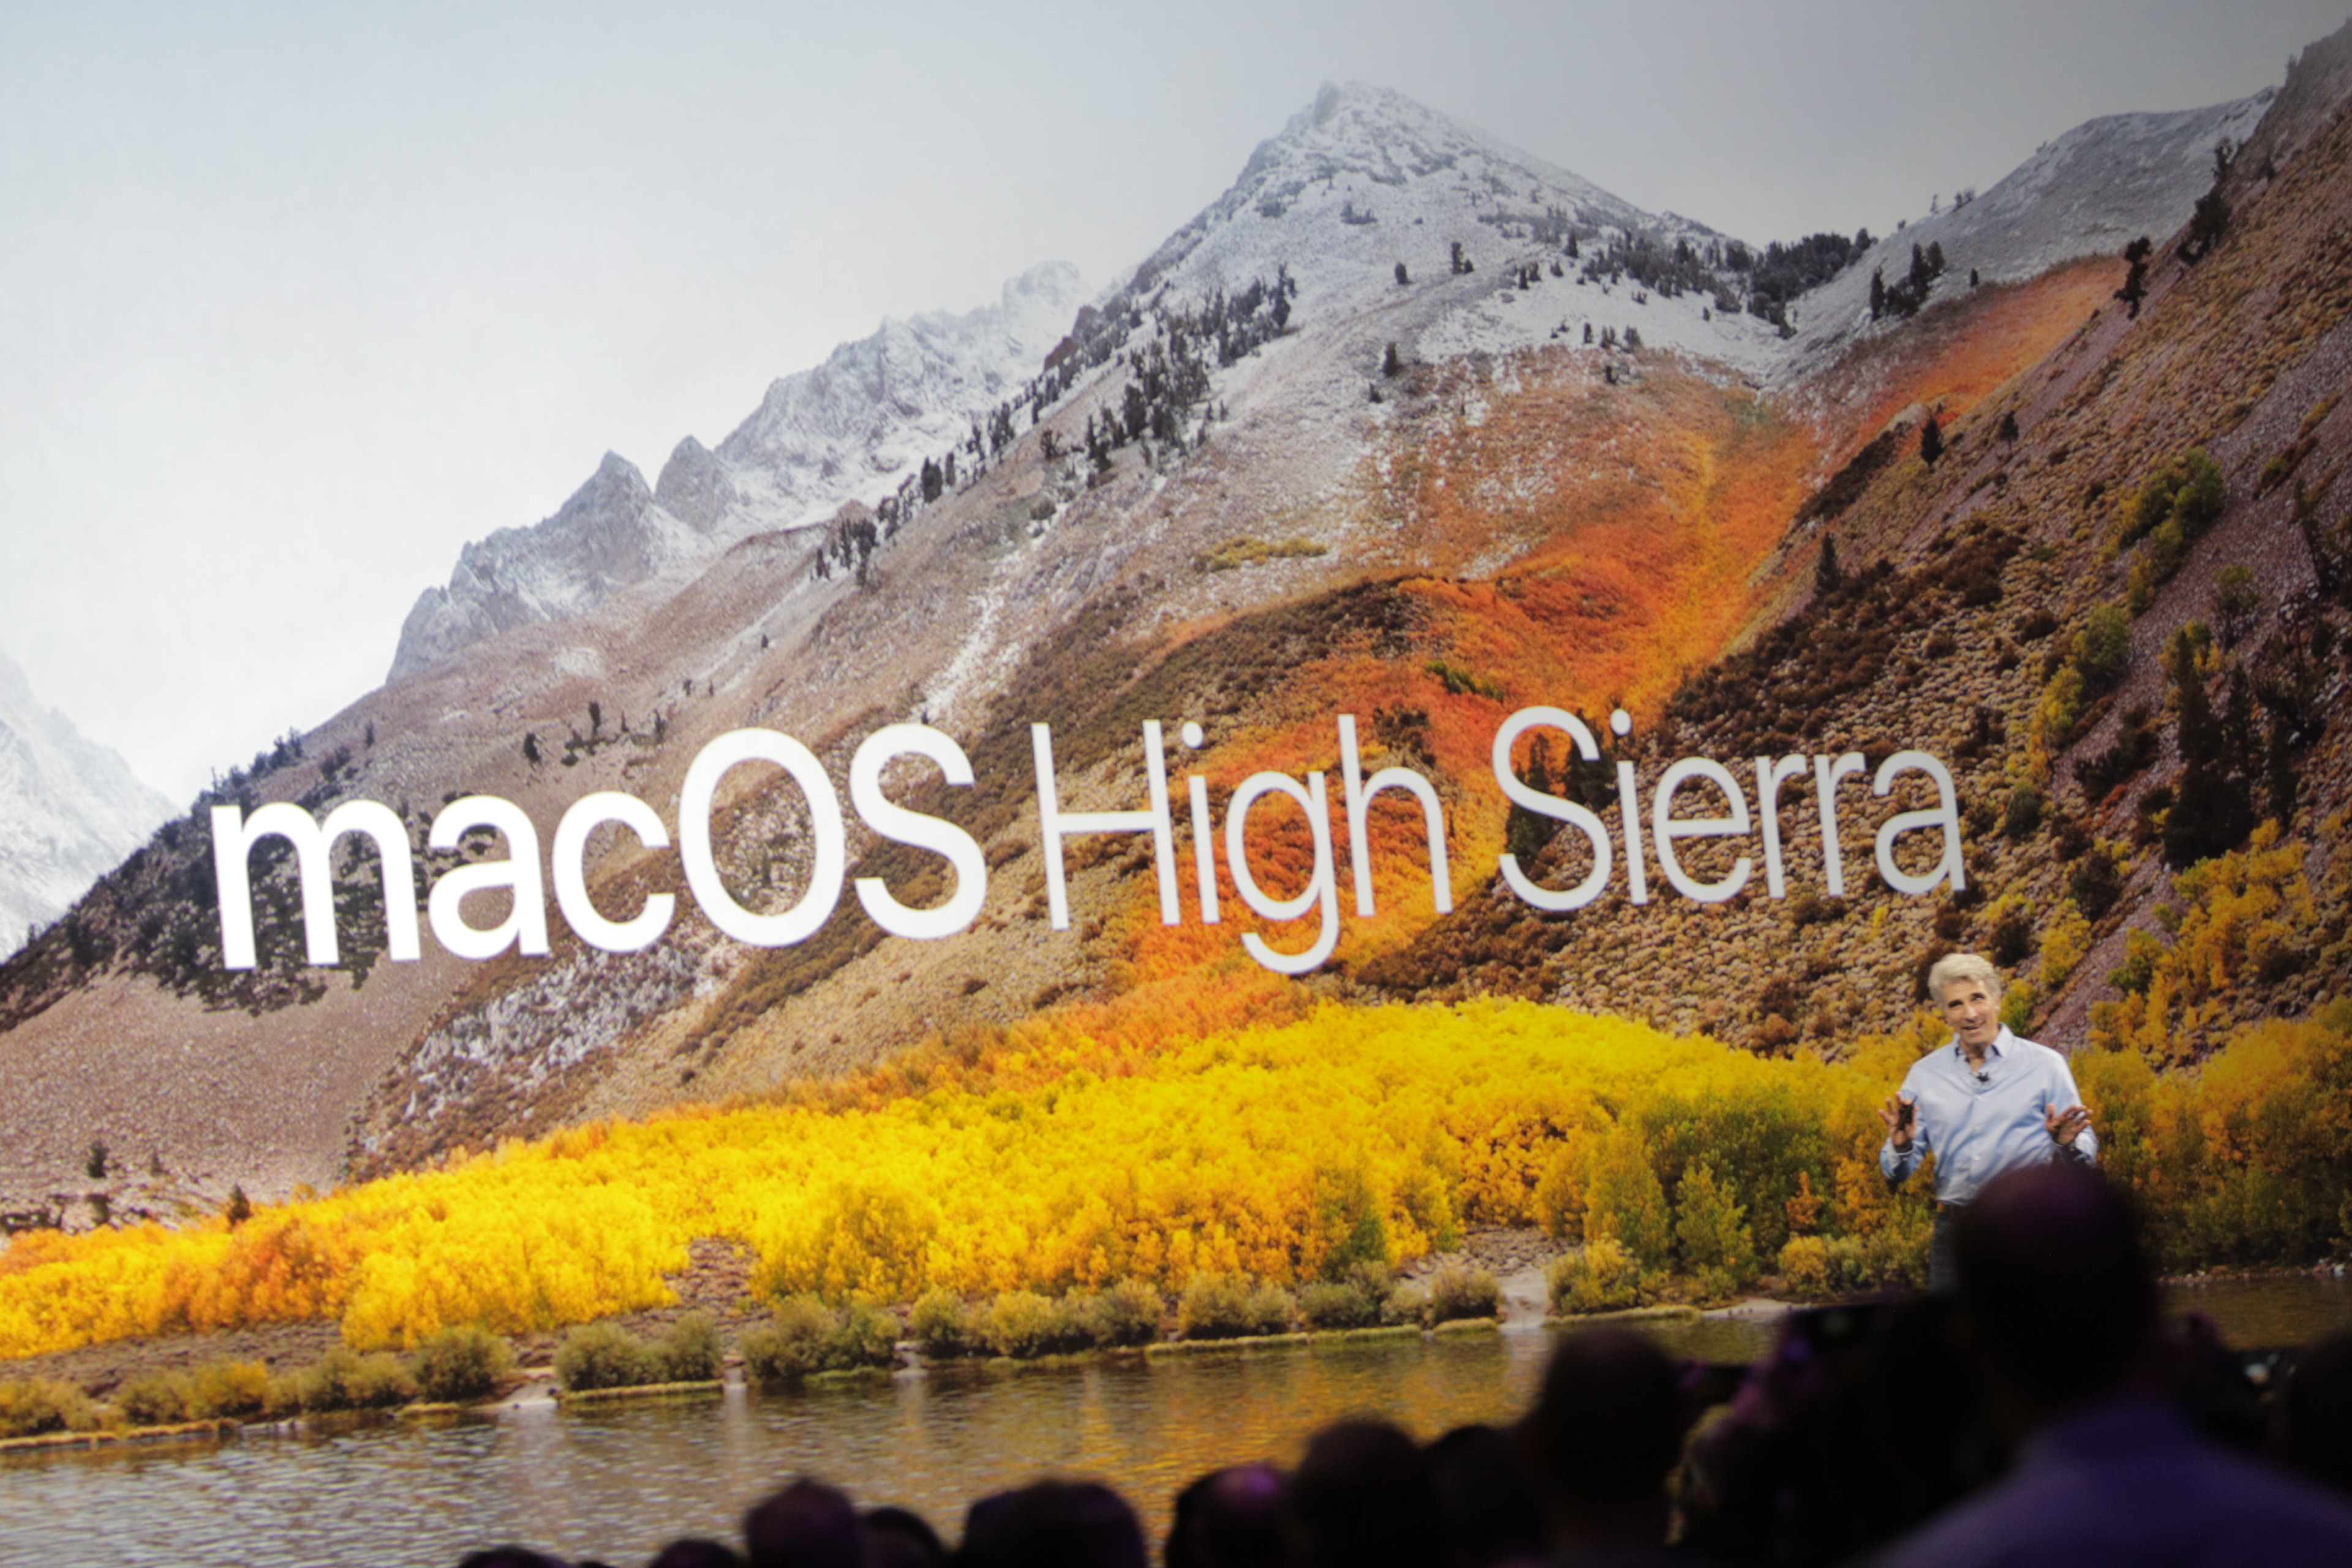 Apple High Sierra 3840x2560 Wallpaper Teahub Io